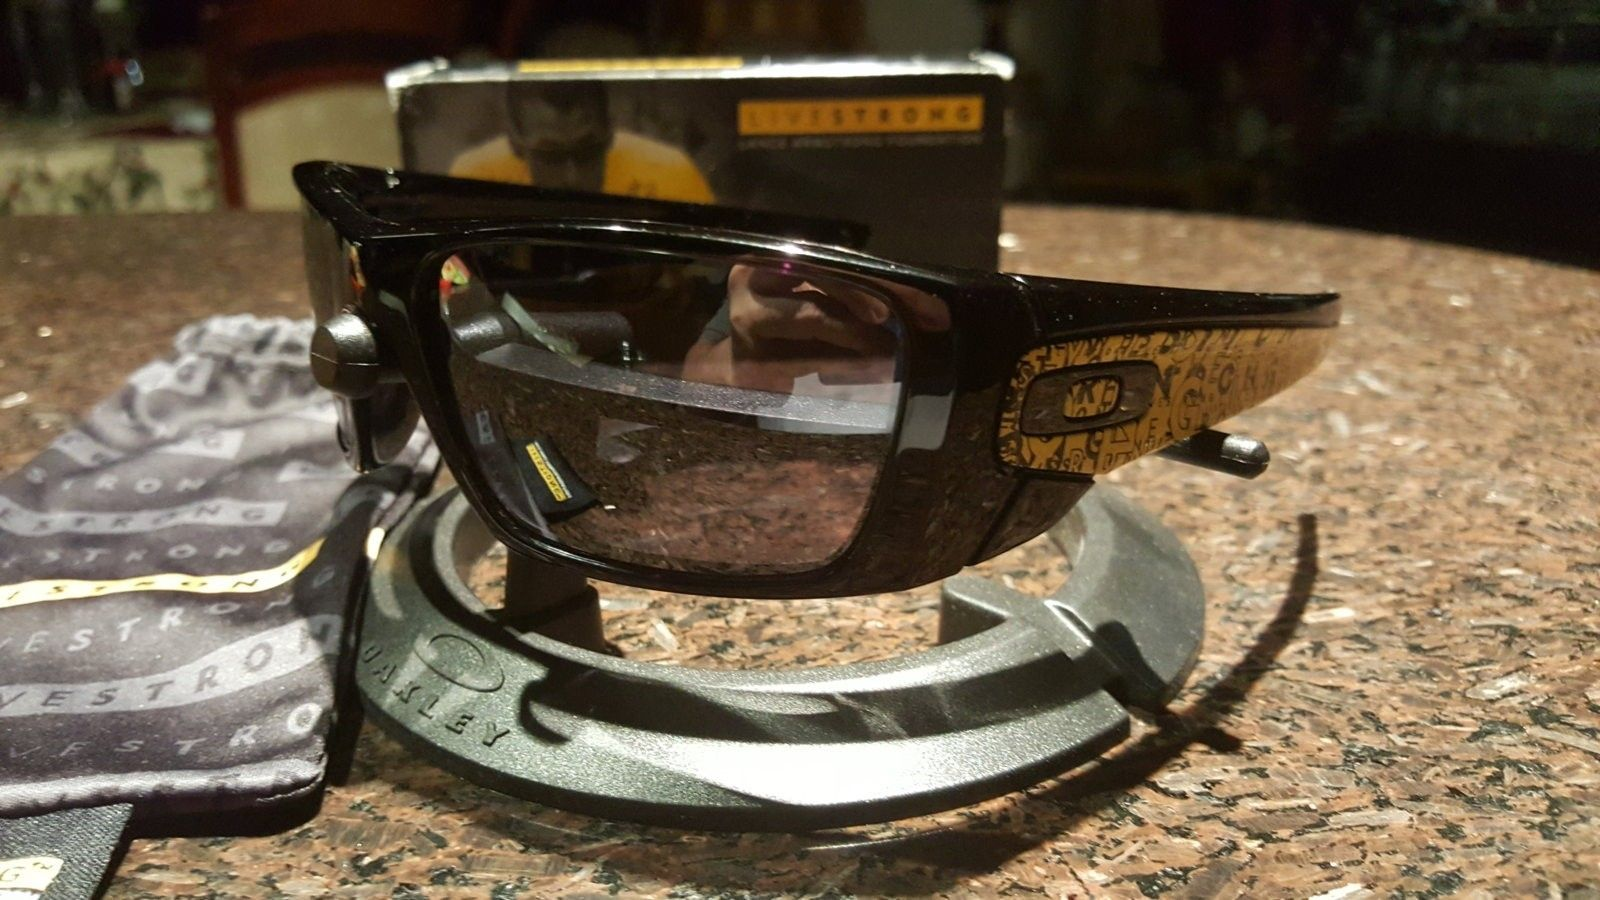 My Latest Acquisitions... - 20160308_202848_001[1].jpg